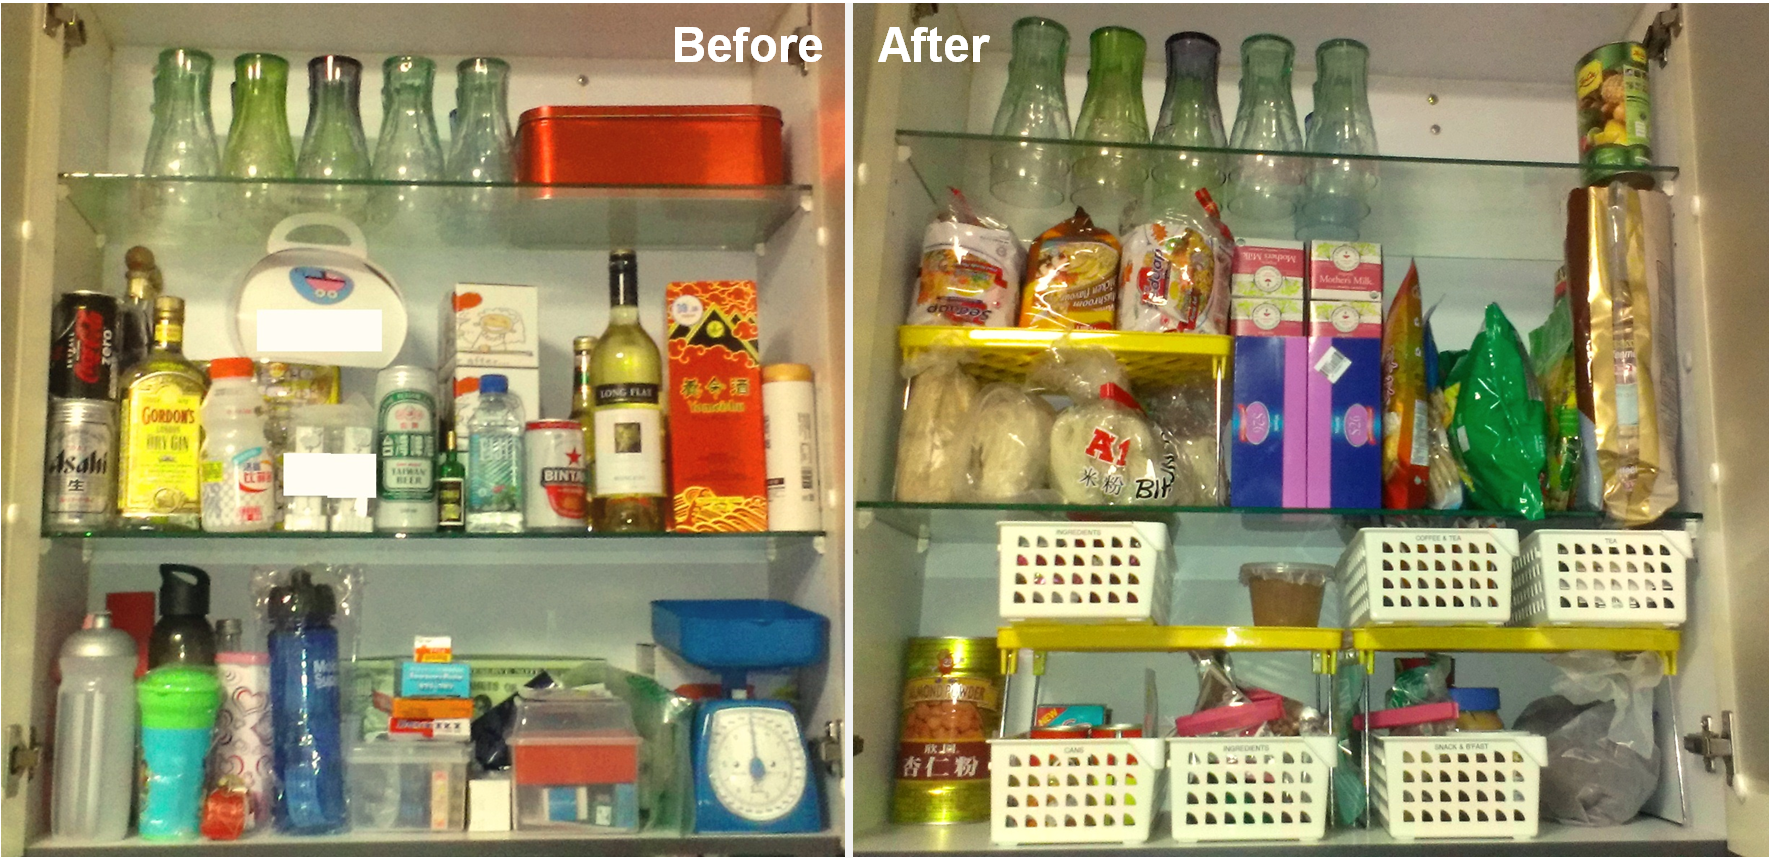 3 simple rules to taming your kitchen clutter